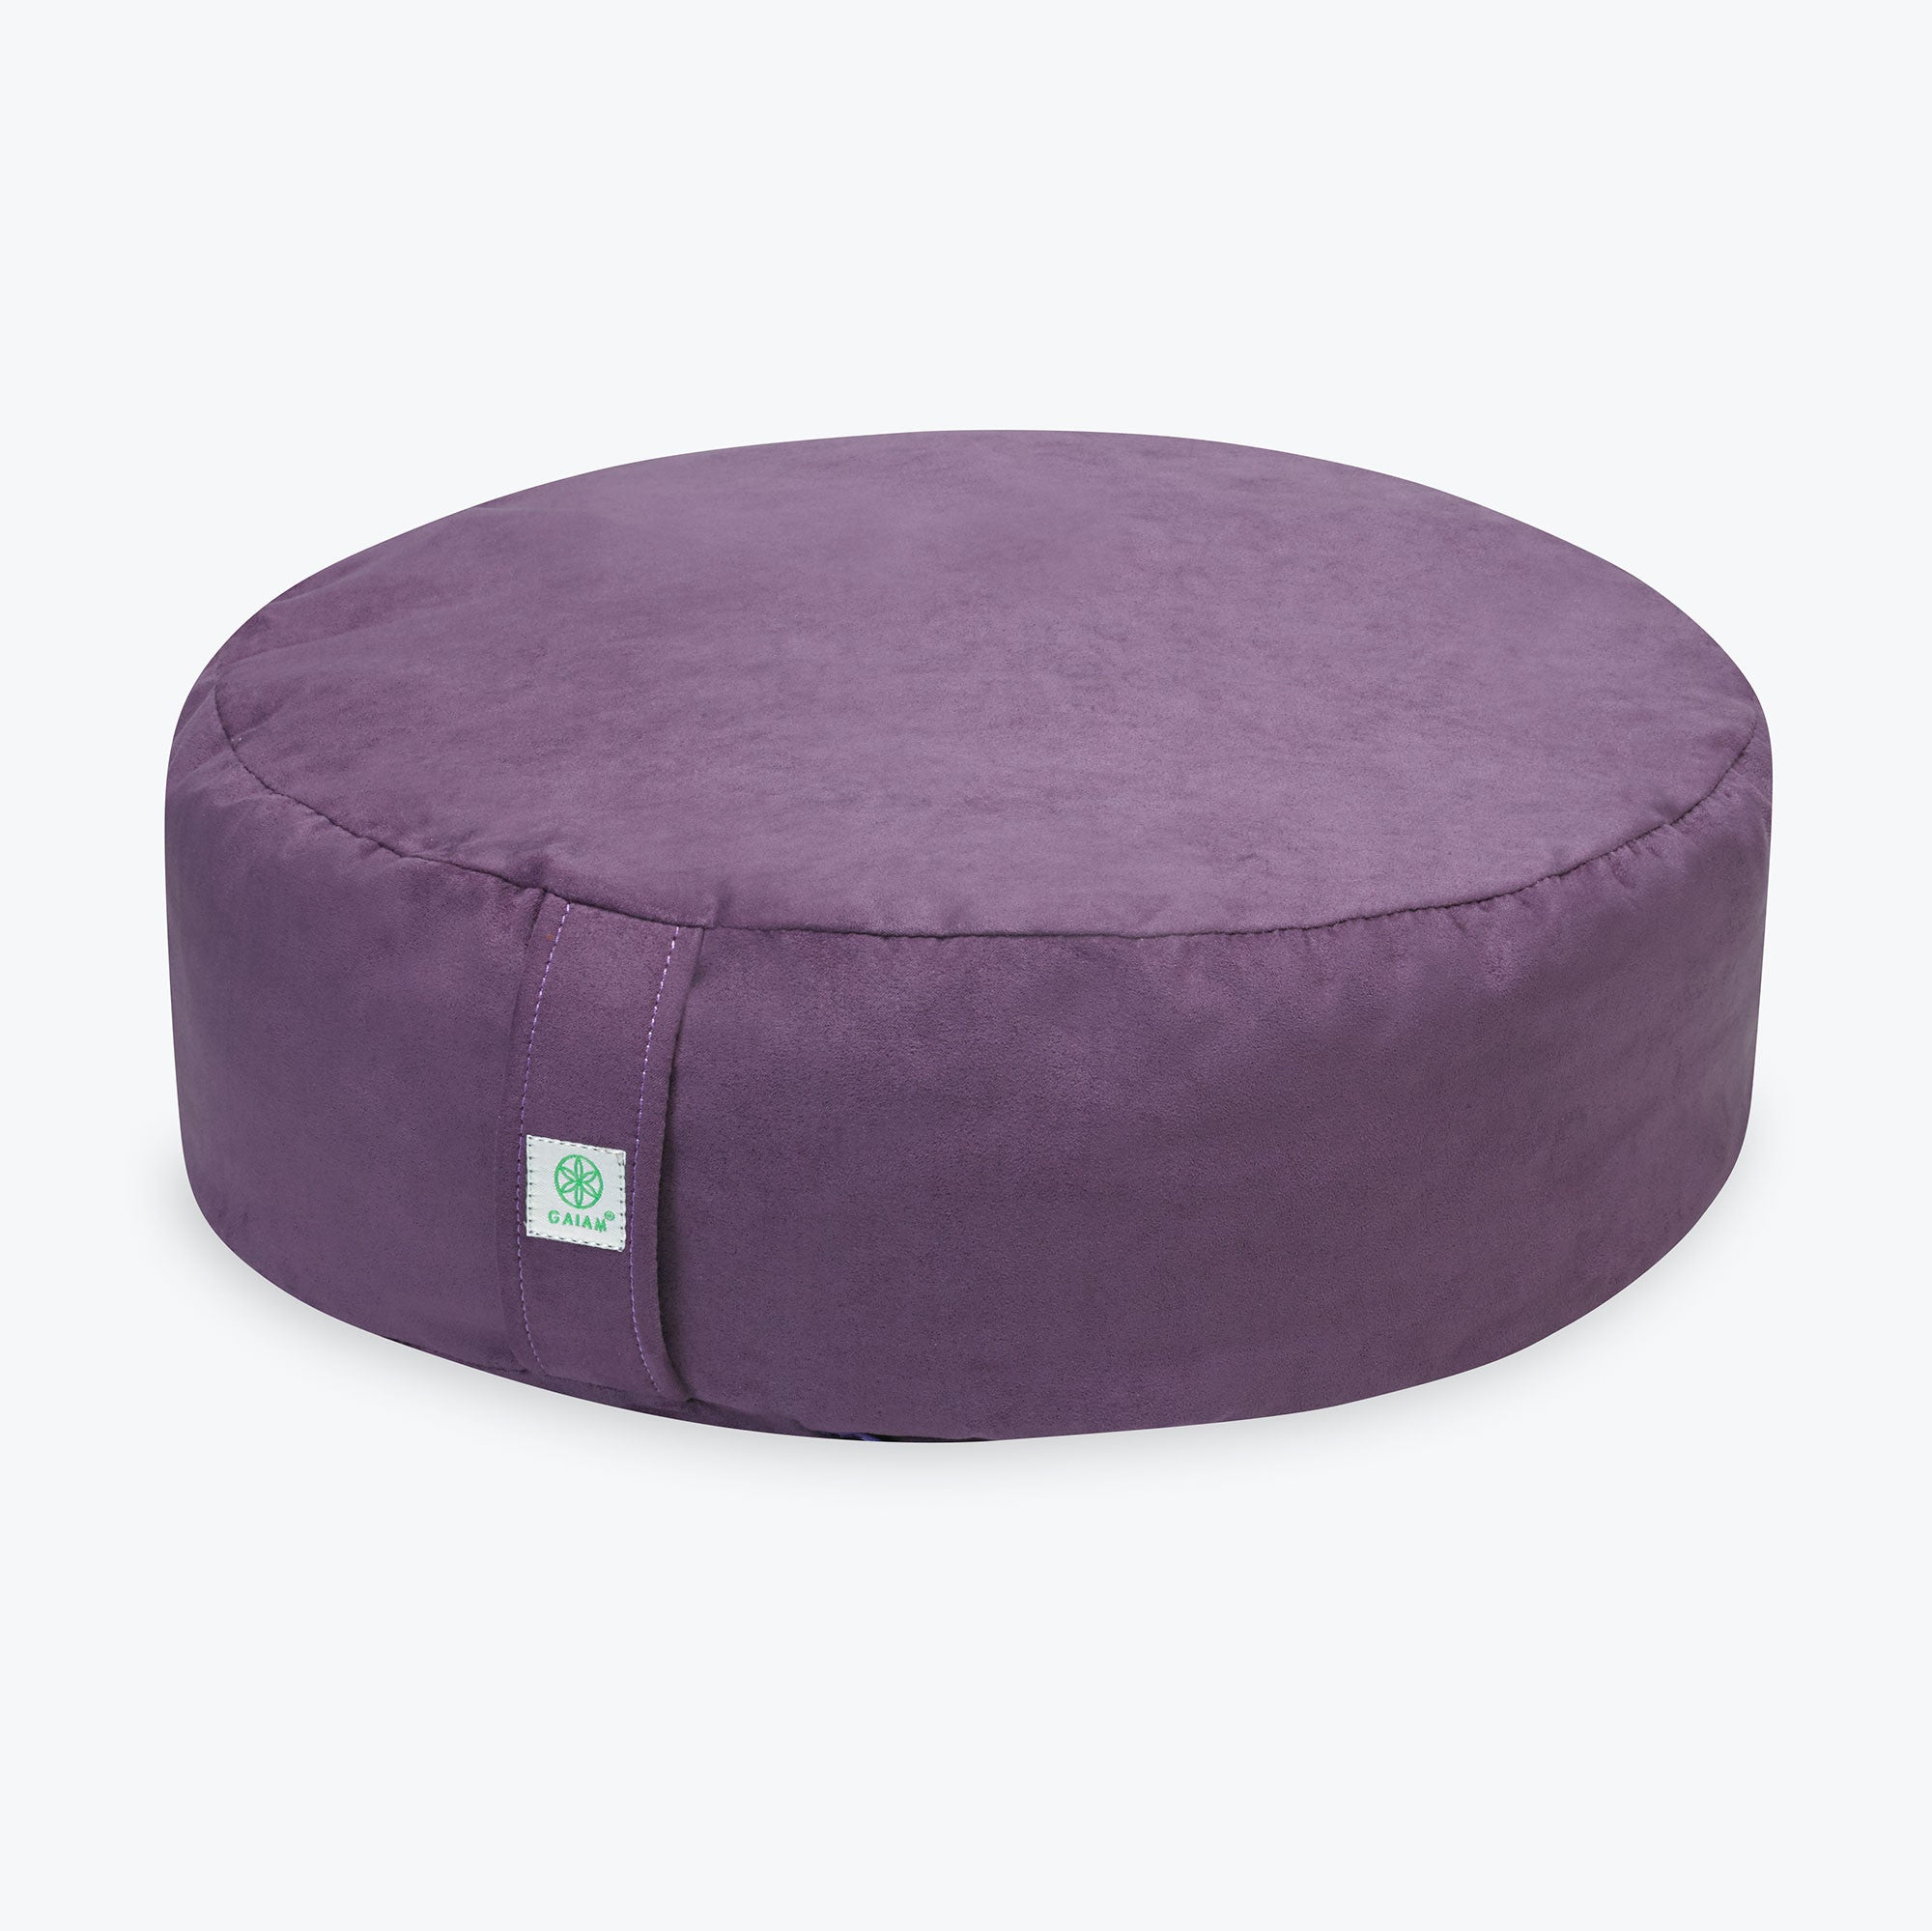 Image of Zafu Meditation Cushion